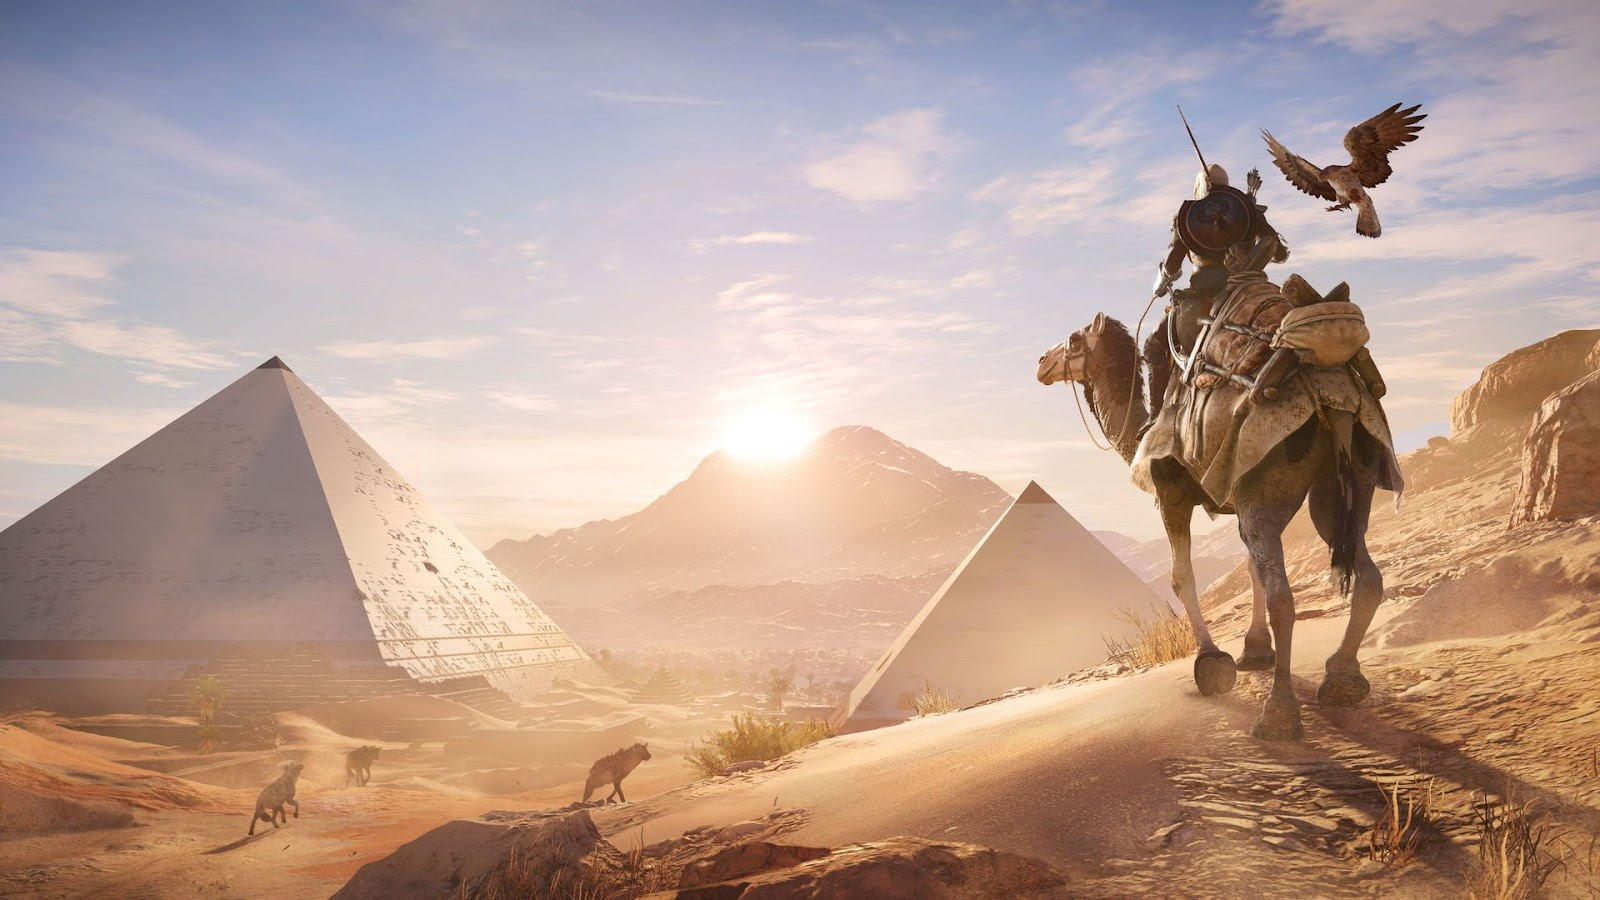 Assassins creed origins and monster hunter world impress at egx assassins creed origins gameplay impressions malvernweather Images